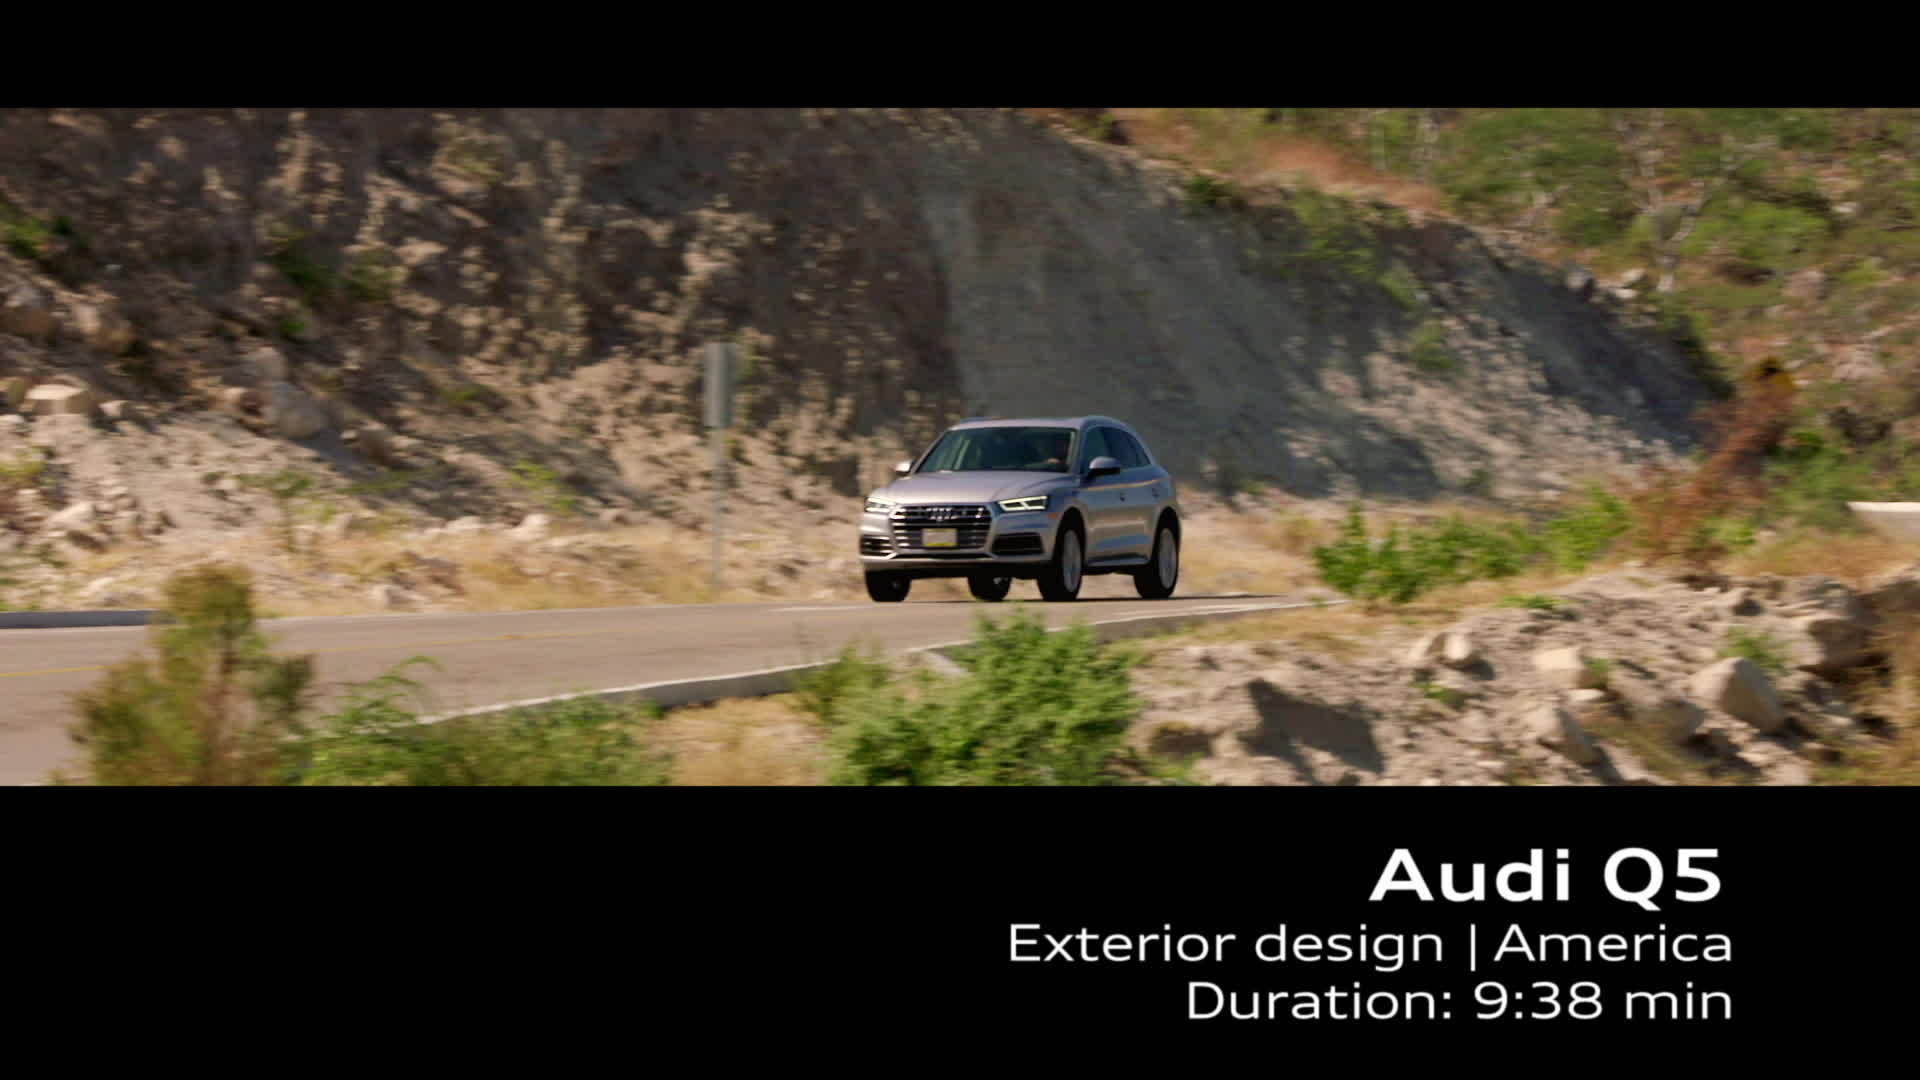 Footage Audi Q5 - U.S. Specifications